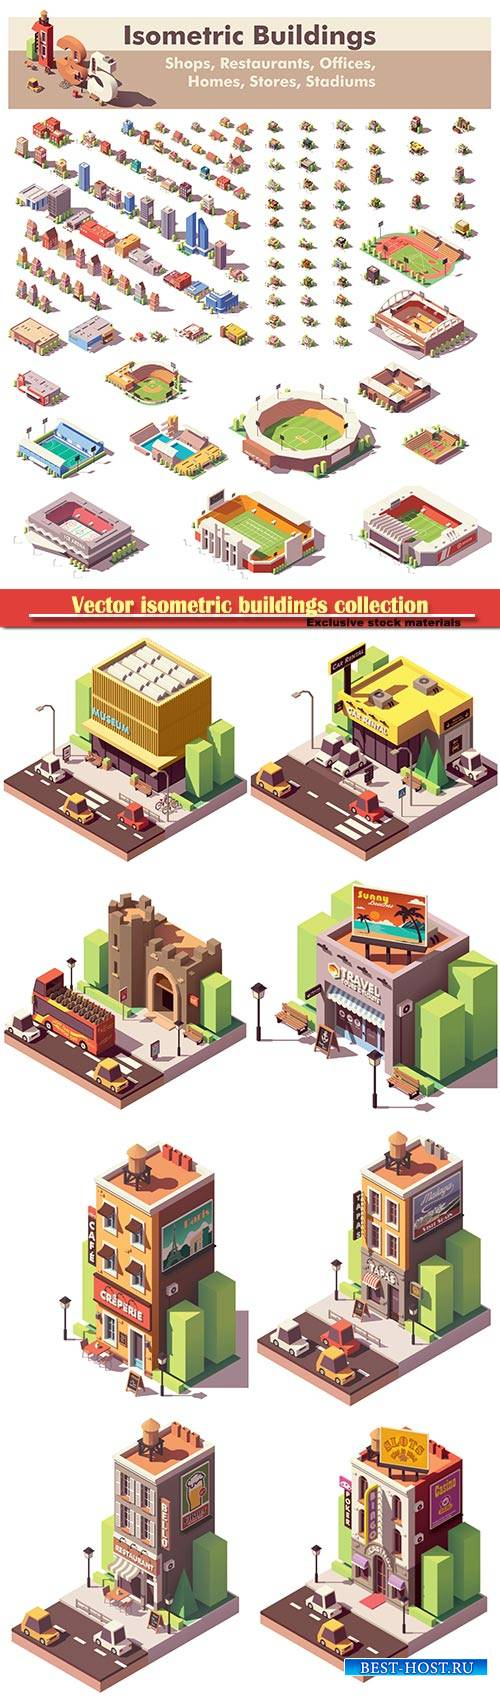 Vector isometric buildings collection, includes homes, offices, stadiums, s ...